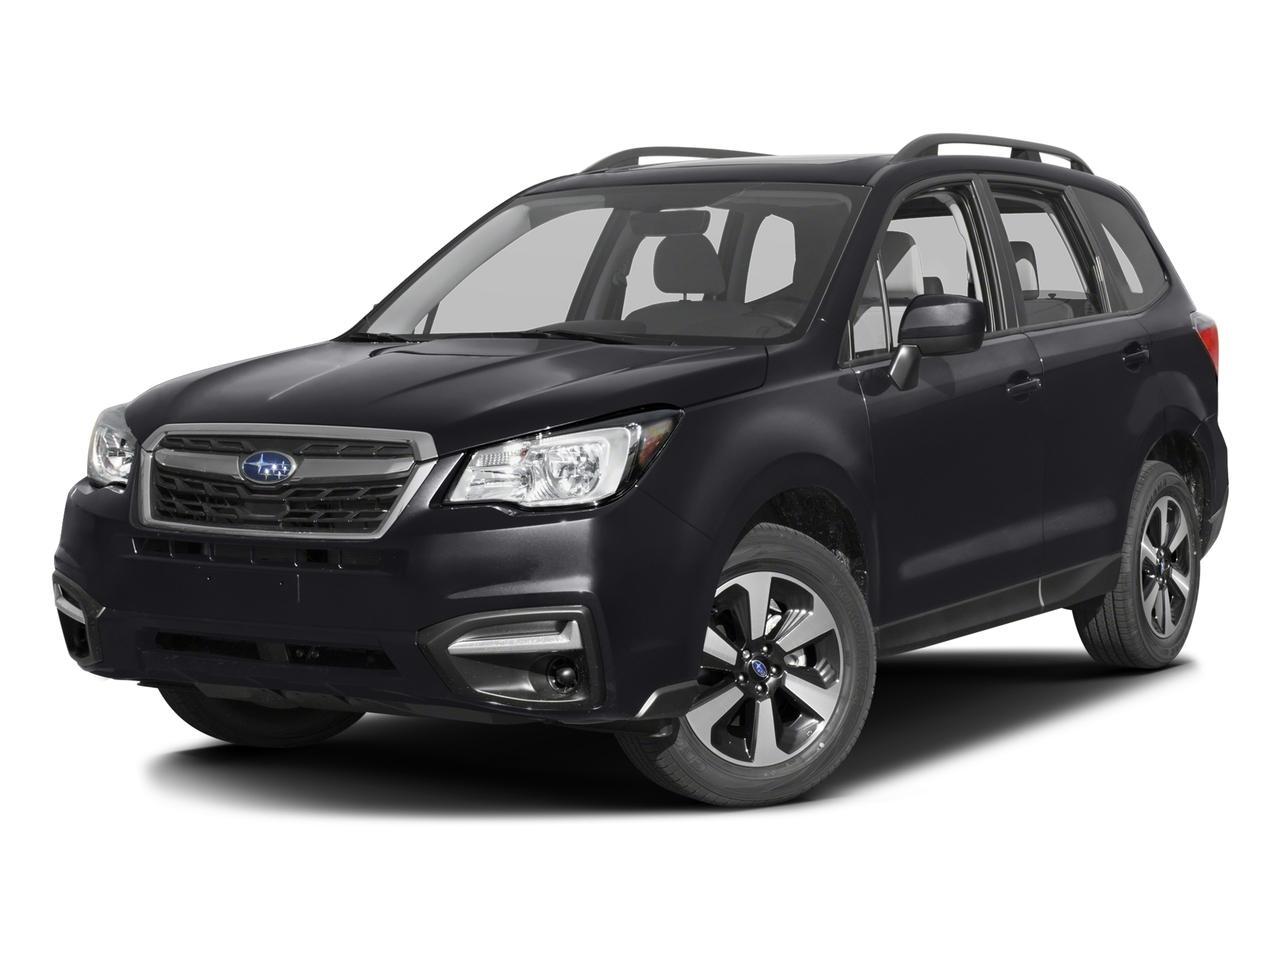 2017 Subaru Forester Vehicle Photo in Twin Falls, ID 83301